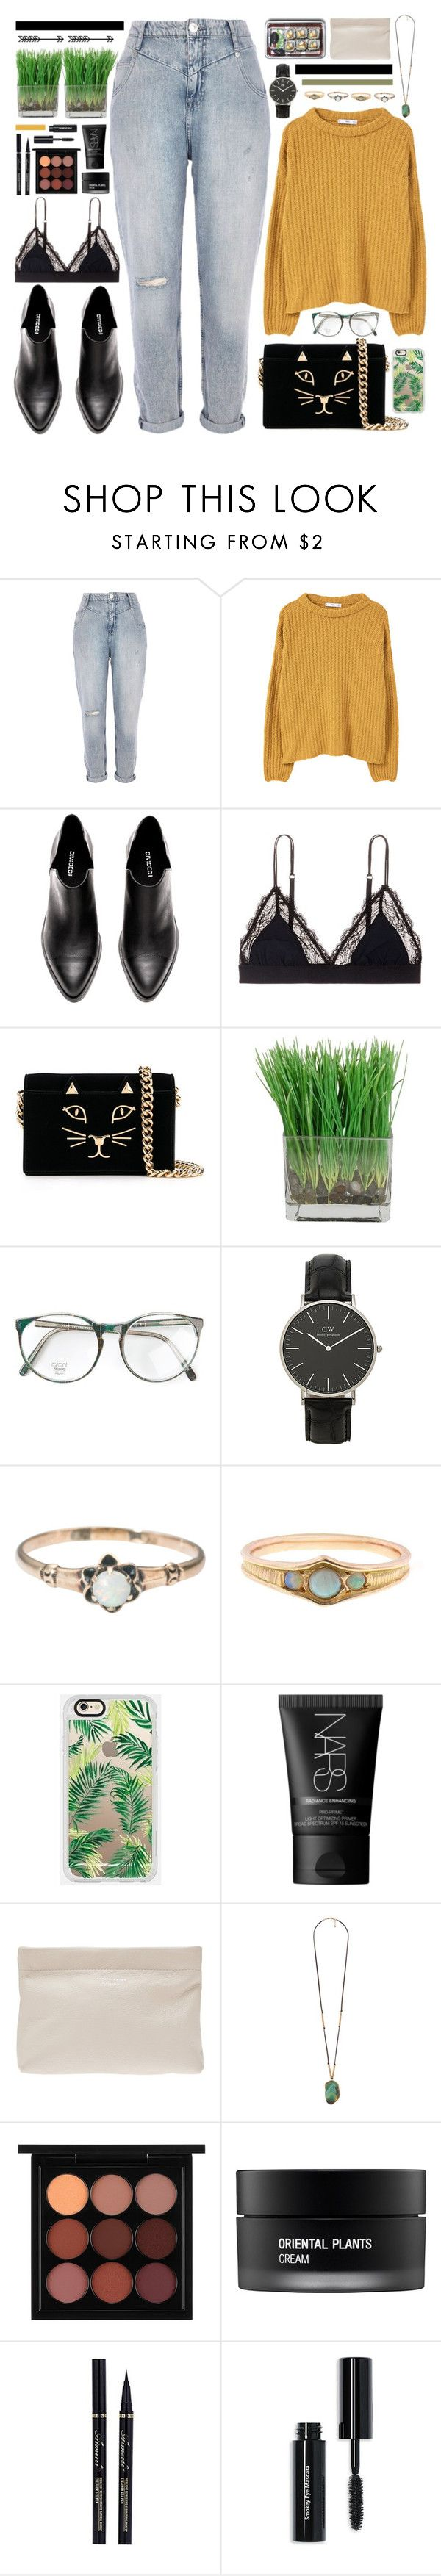 """""""03.11.2016"""" by saramsilva ❤ liked on Polyvore featuring River Island, MANGO, LoveStories, Charlotte Olympia, Daniel Wellington, Casetify, NARS Cosmetics, Acne Studios, Pieces and Forever 21"""